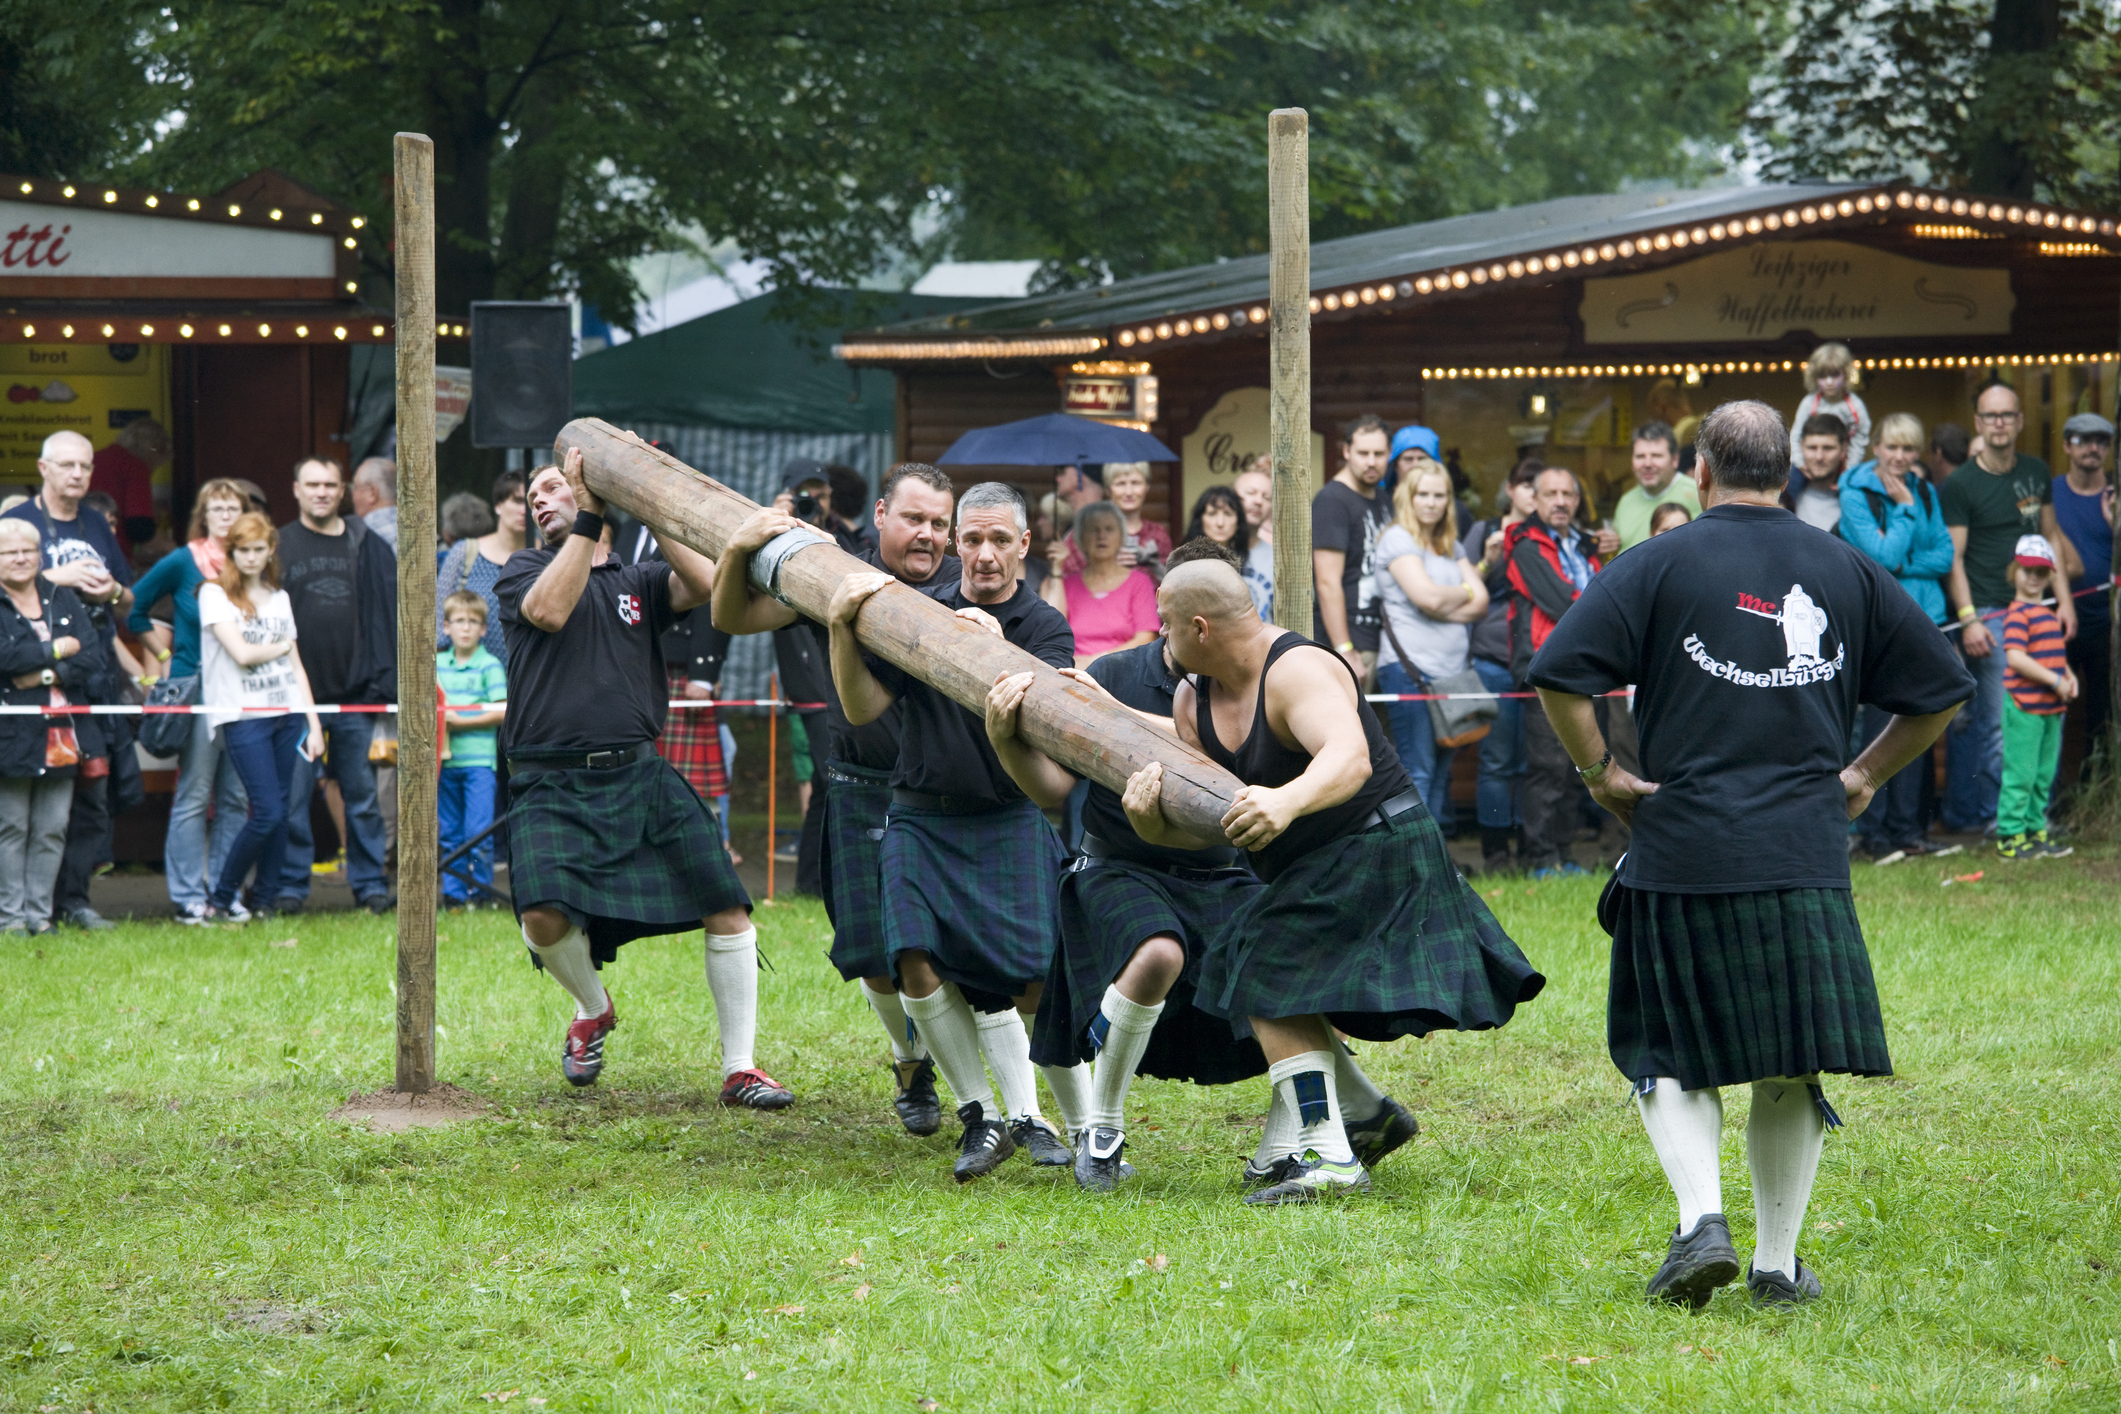 Highland Games Image